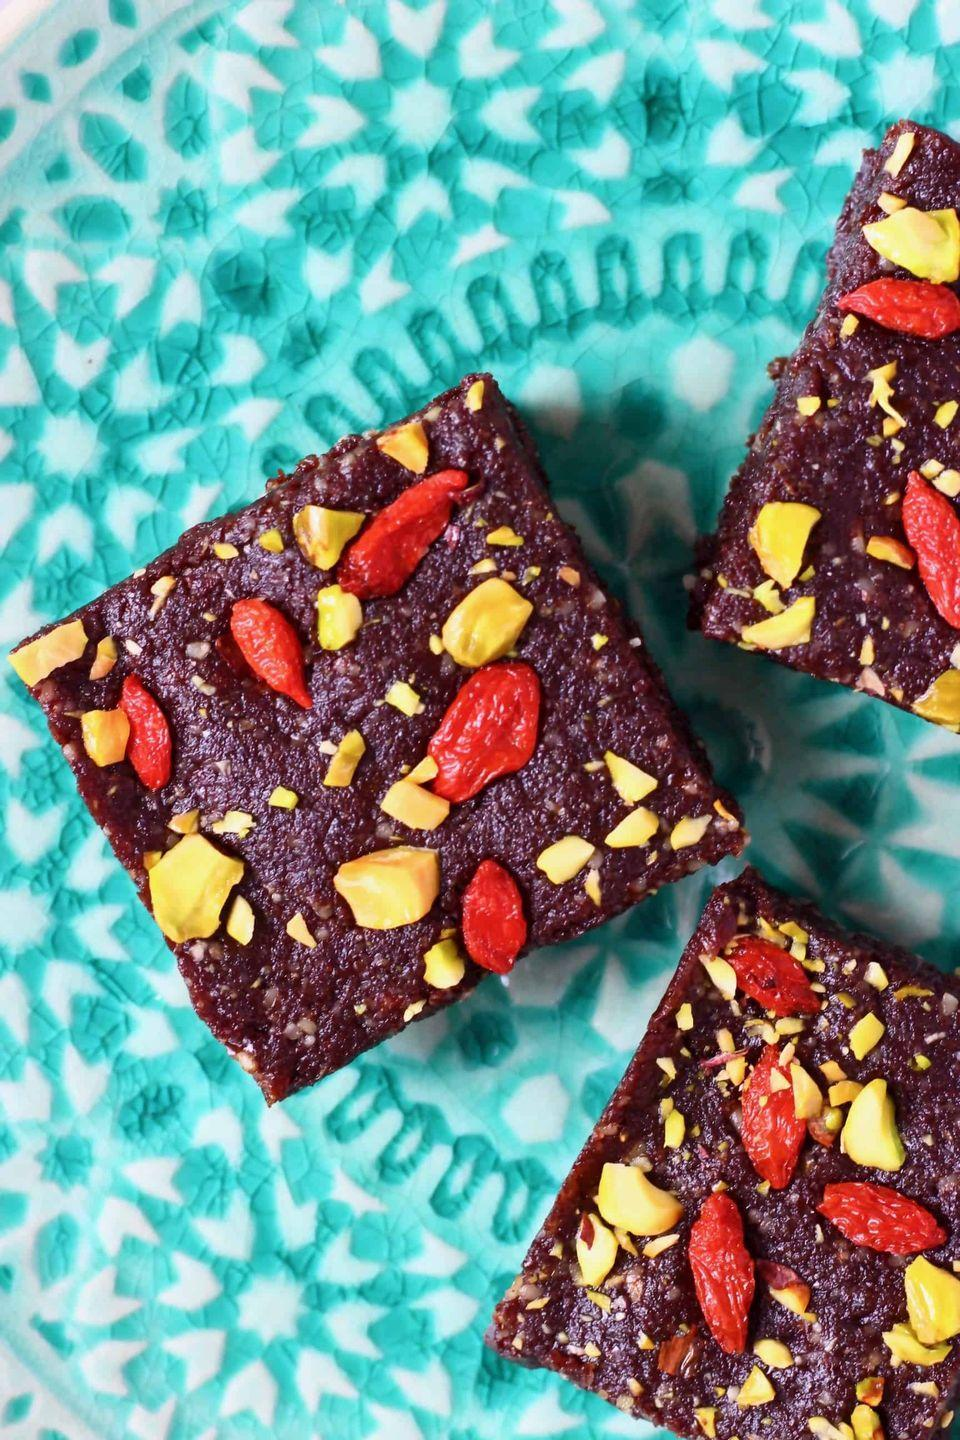 """<p>Vegans, whip up a batch of these five-ingredient brownies and stash 'em in the fridge for when cravings strike. </p><p><a class=""""link rapid-noclick-resp"""" href=""""https://www.rhiansrecipes.com/no-bake-brownies/"""" rel=""""nofollow noopener"""" target=""""_blank"""" data-ylk=""""slk:GET THE RECIPE"""">GET THE RECIPE</a></p><p><em>Per serving: 248 calories, 18 g fat (2 g sat), 22 g carbs, 2 mg sodium, 15 g sugar, 4 g fiber, 5 g protein</em></p>"""